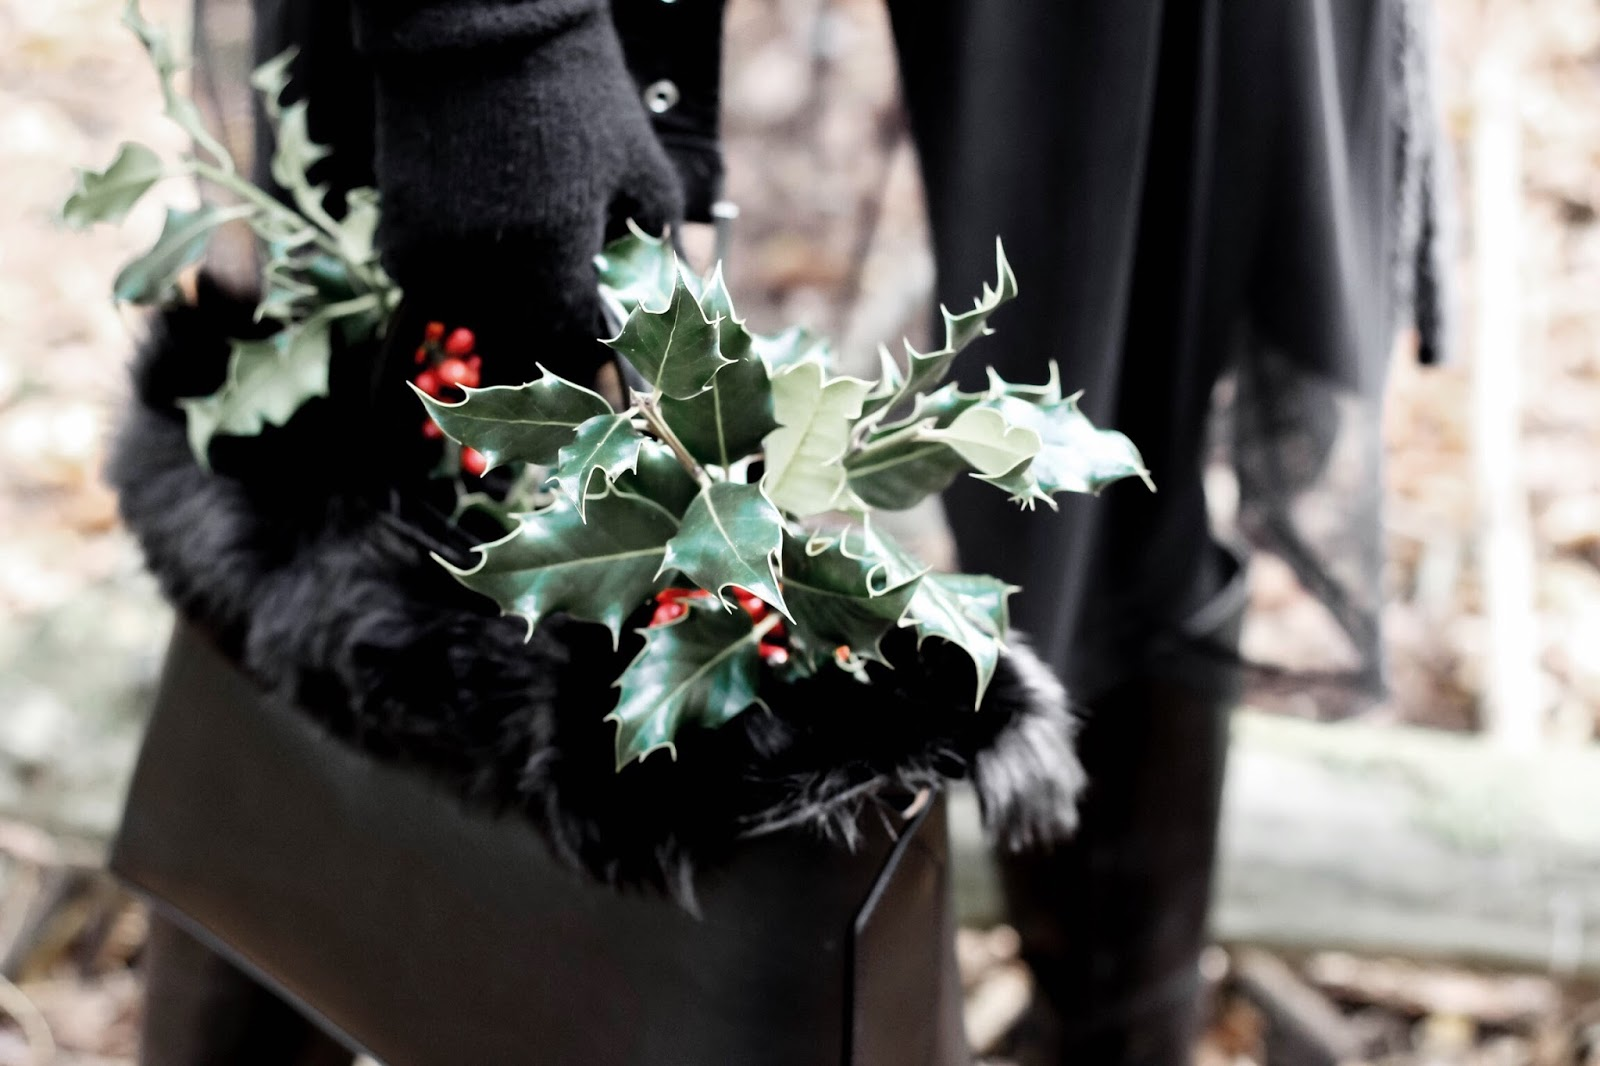 Collecting holly foliage for Christmas in Bag